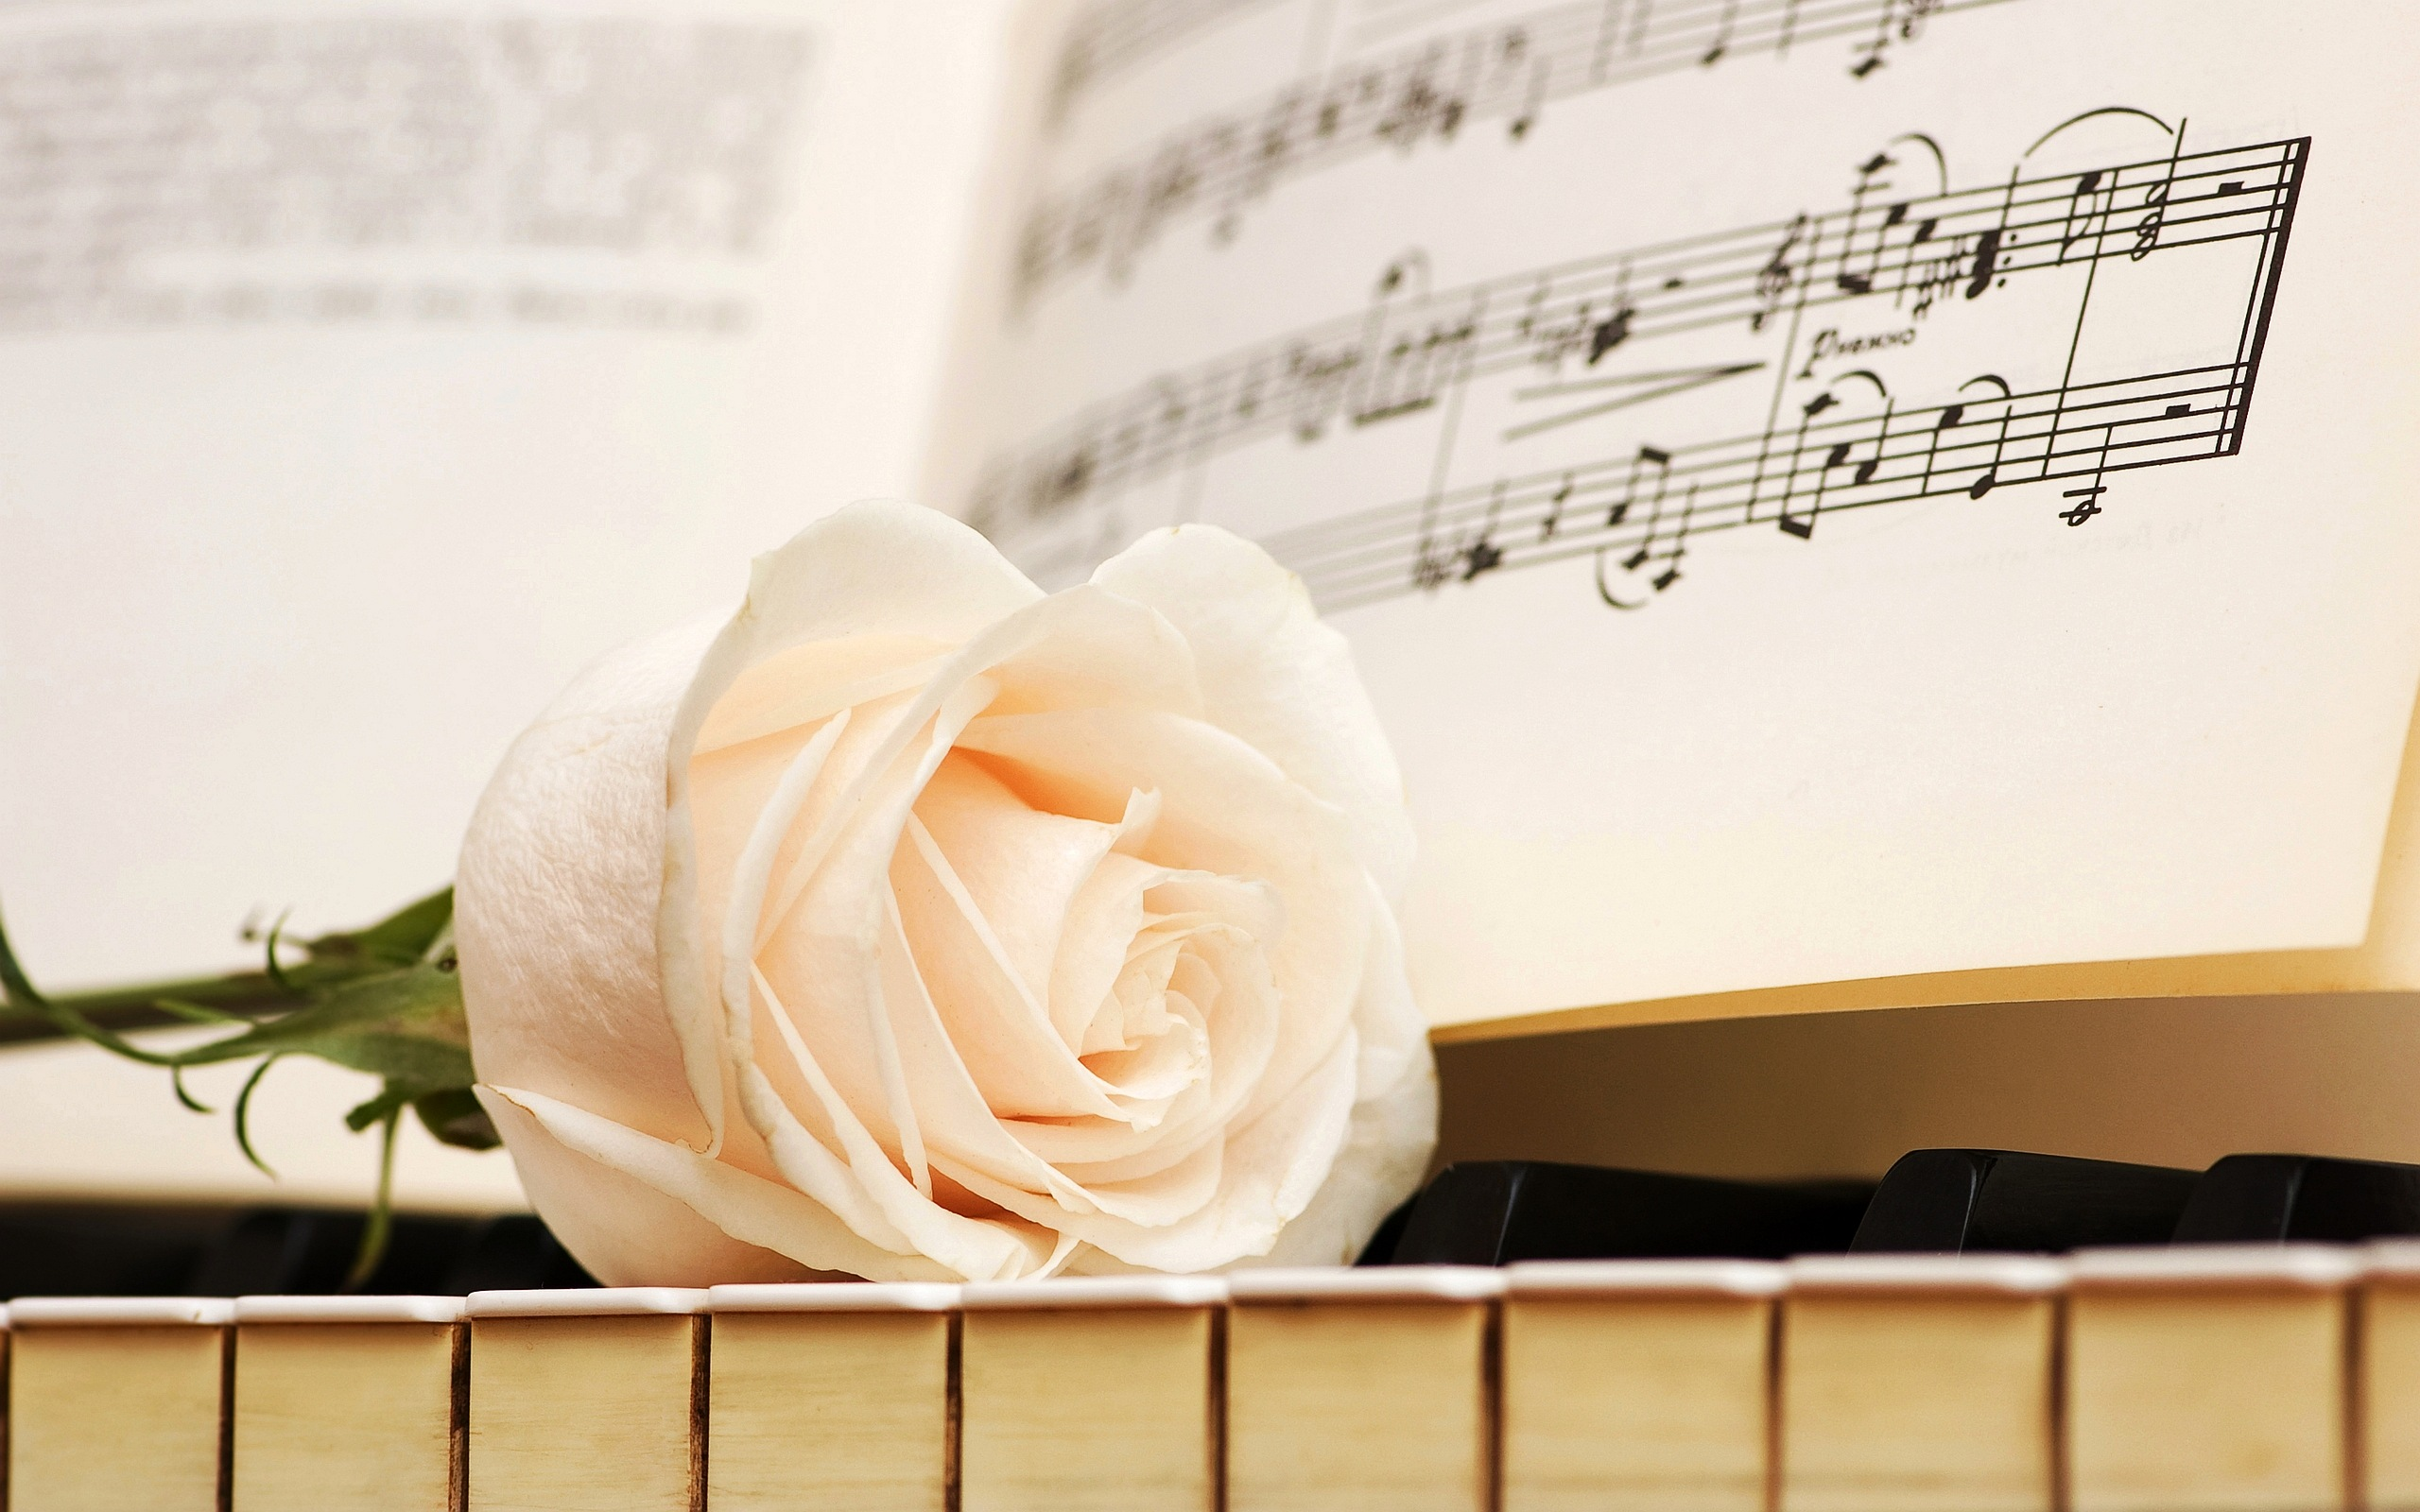 piano rose wallpaper